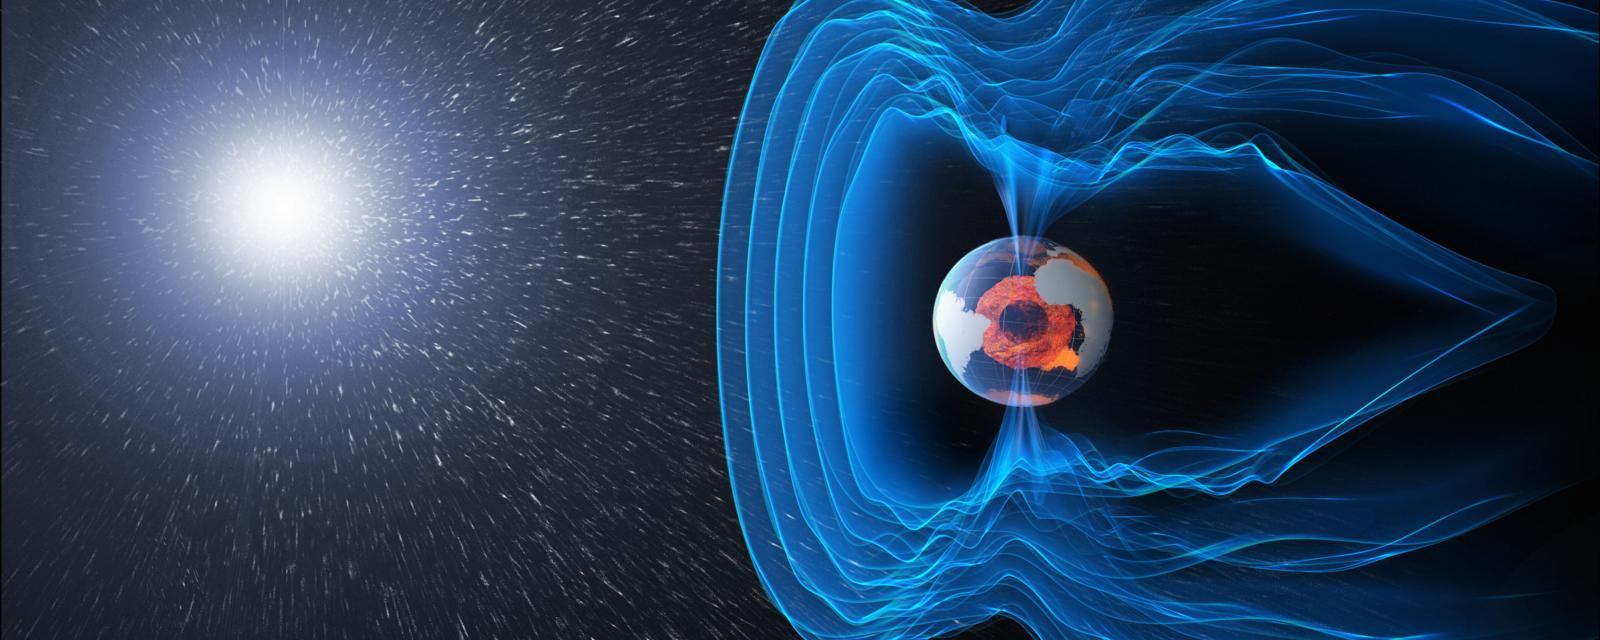 Visualization of Earth's magnetic field